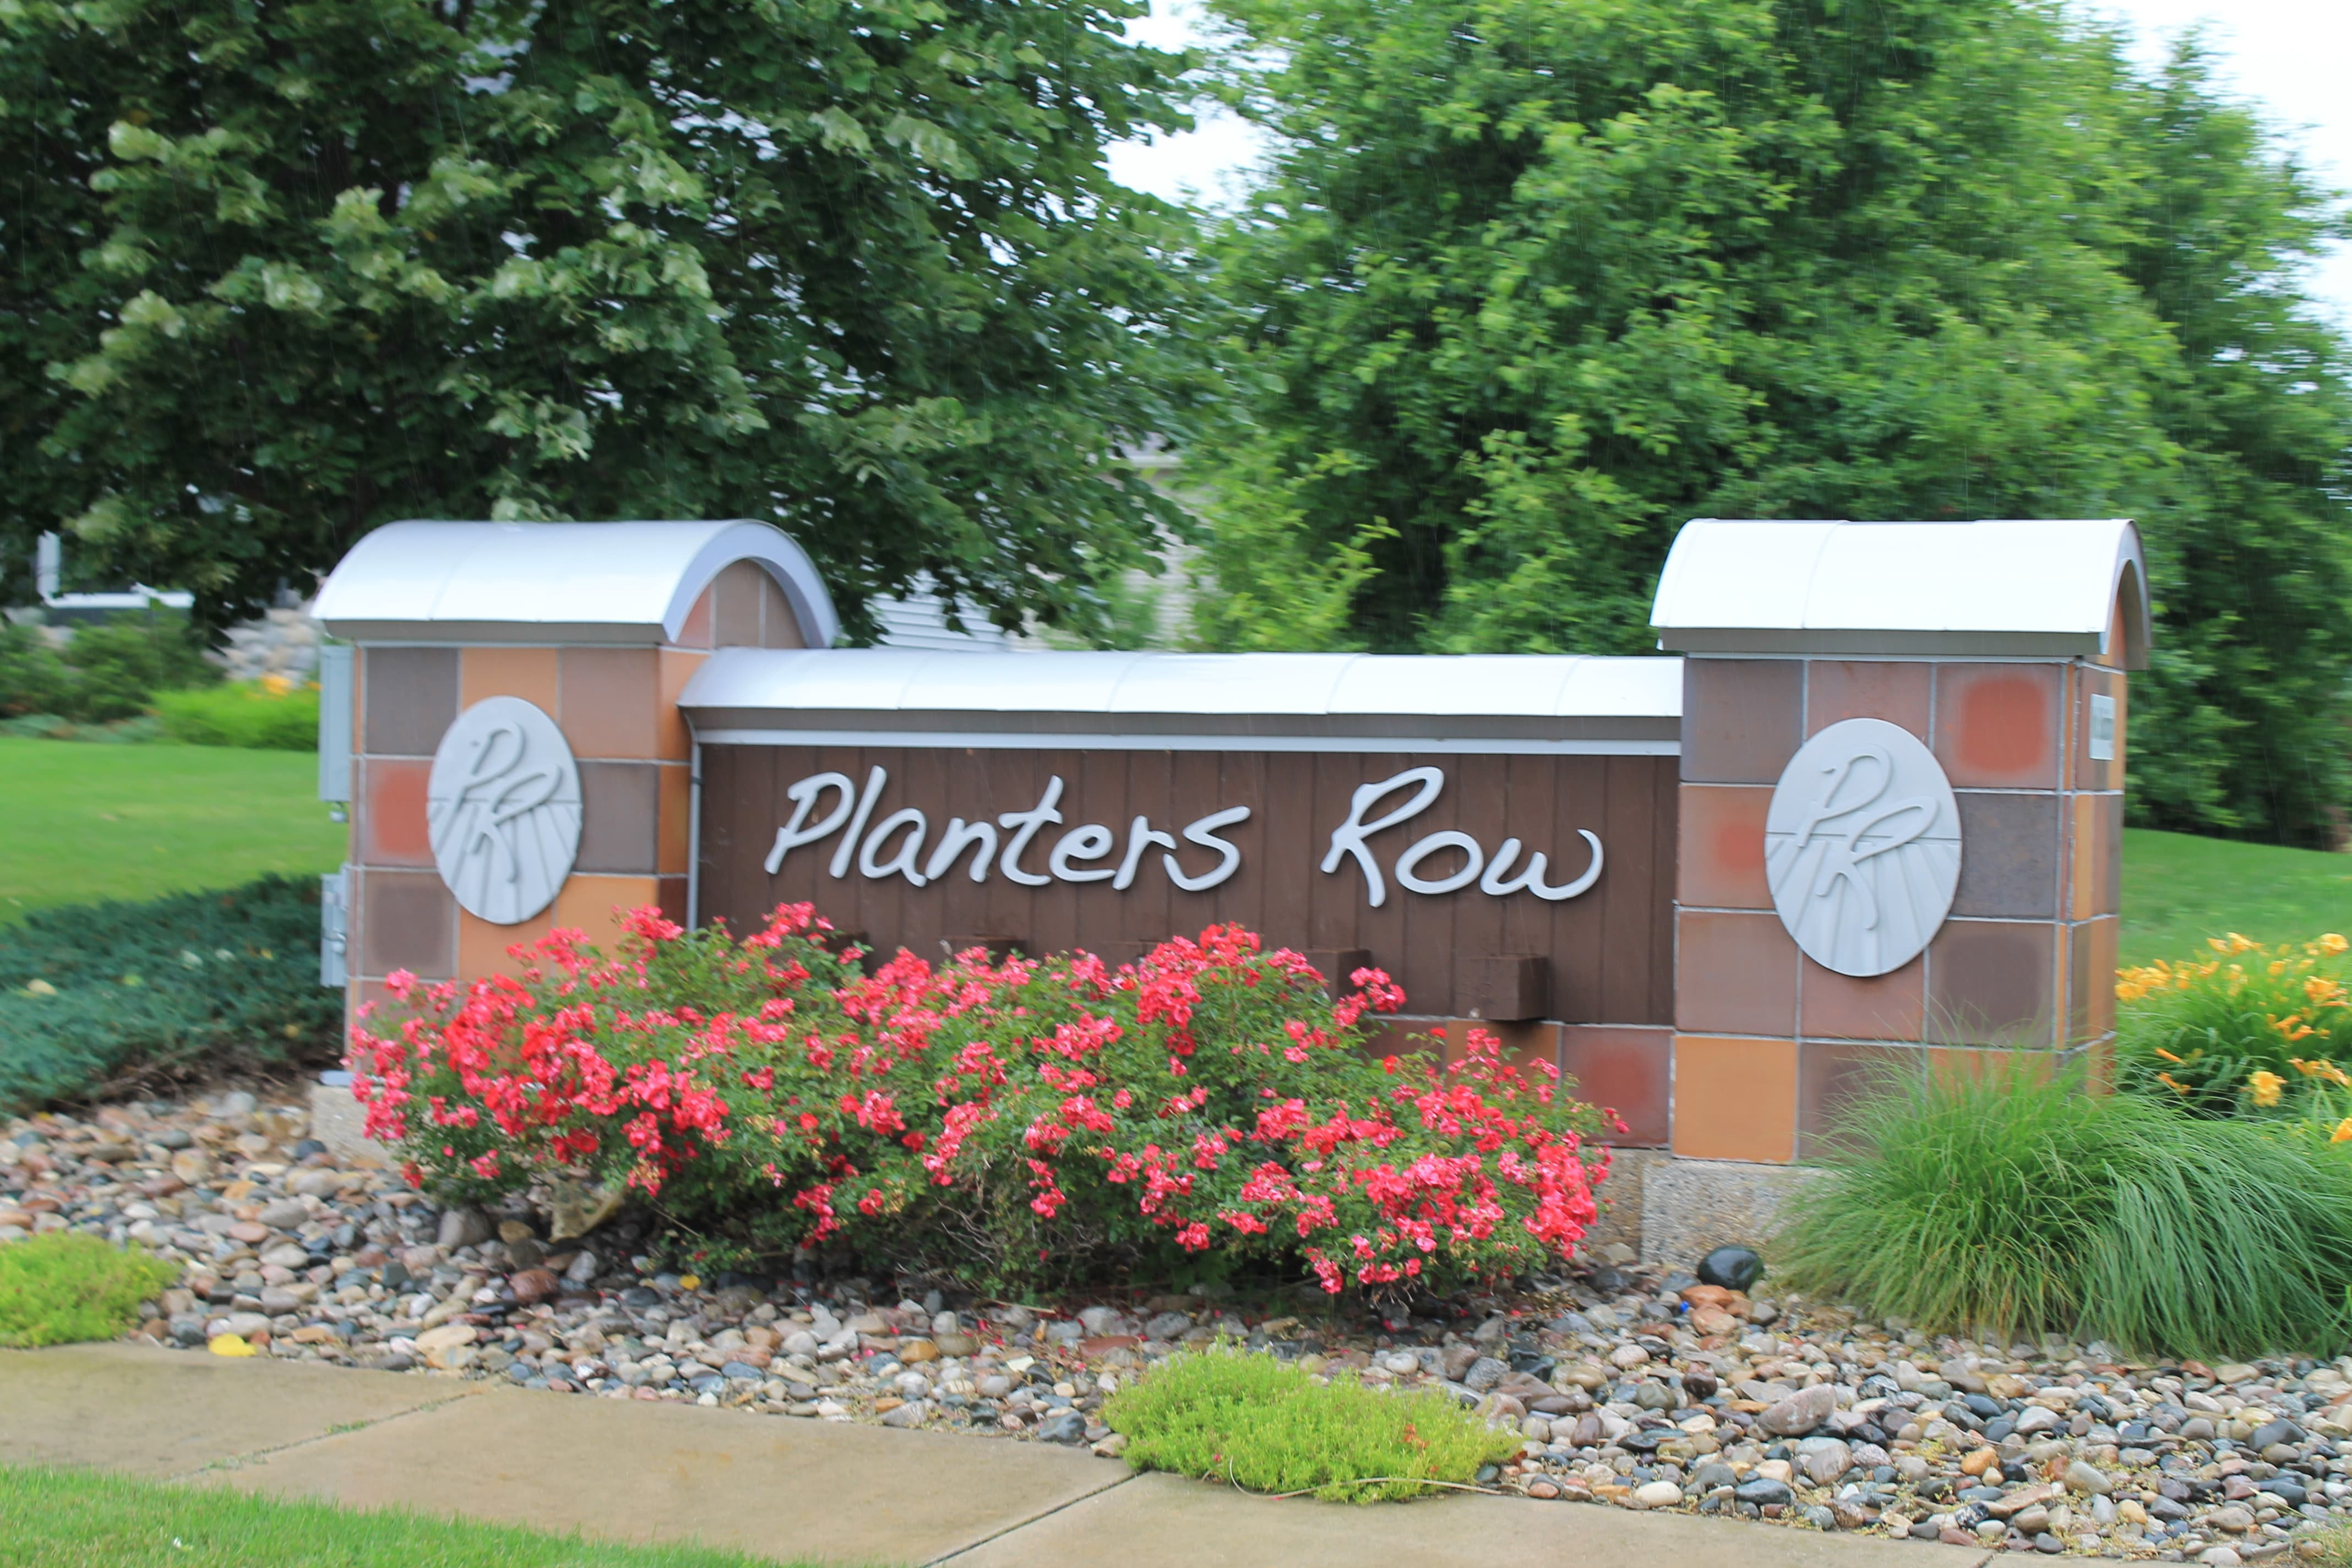 Entrance Sign of Planters Row